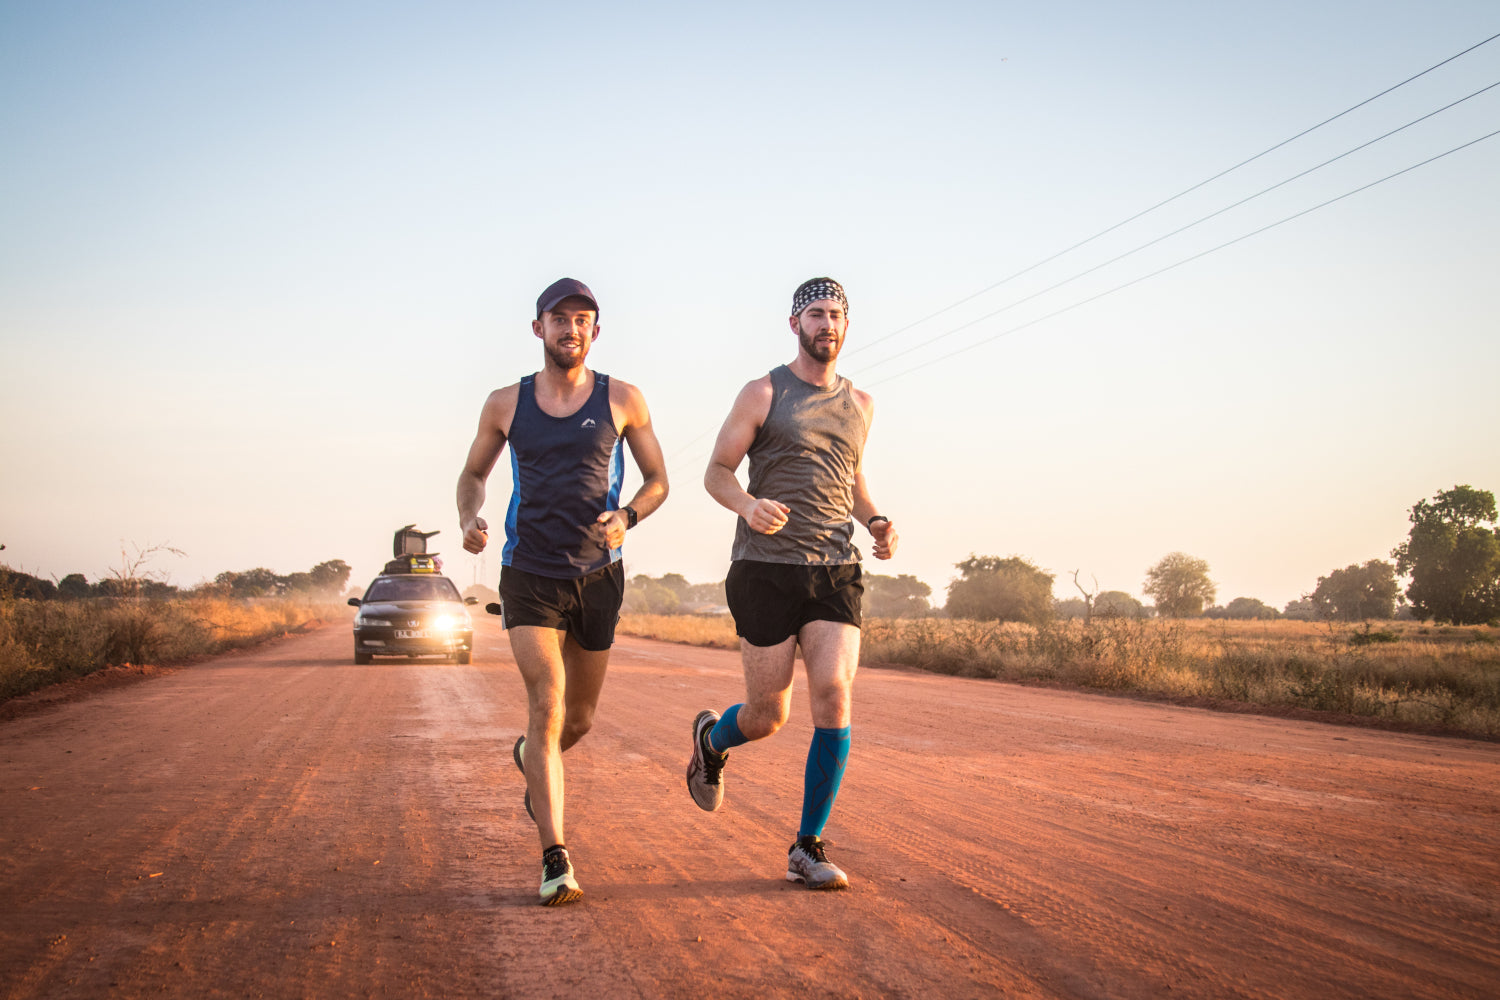 Two runners stride along a dirt road side by side